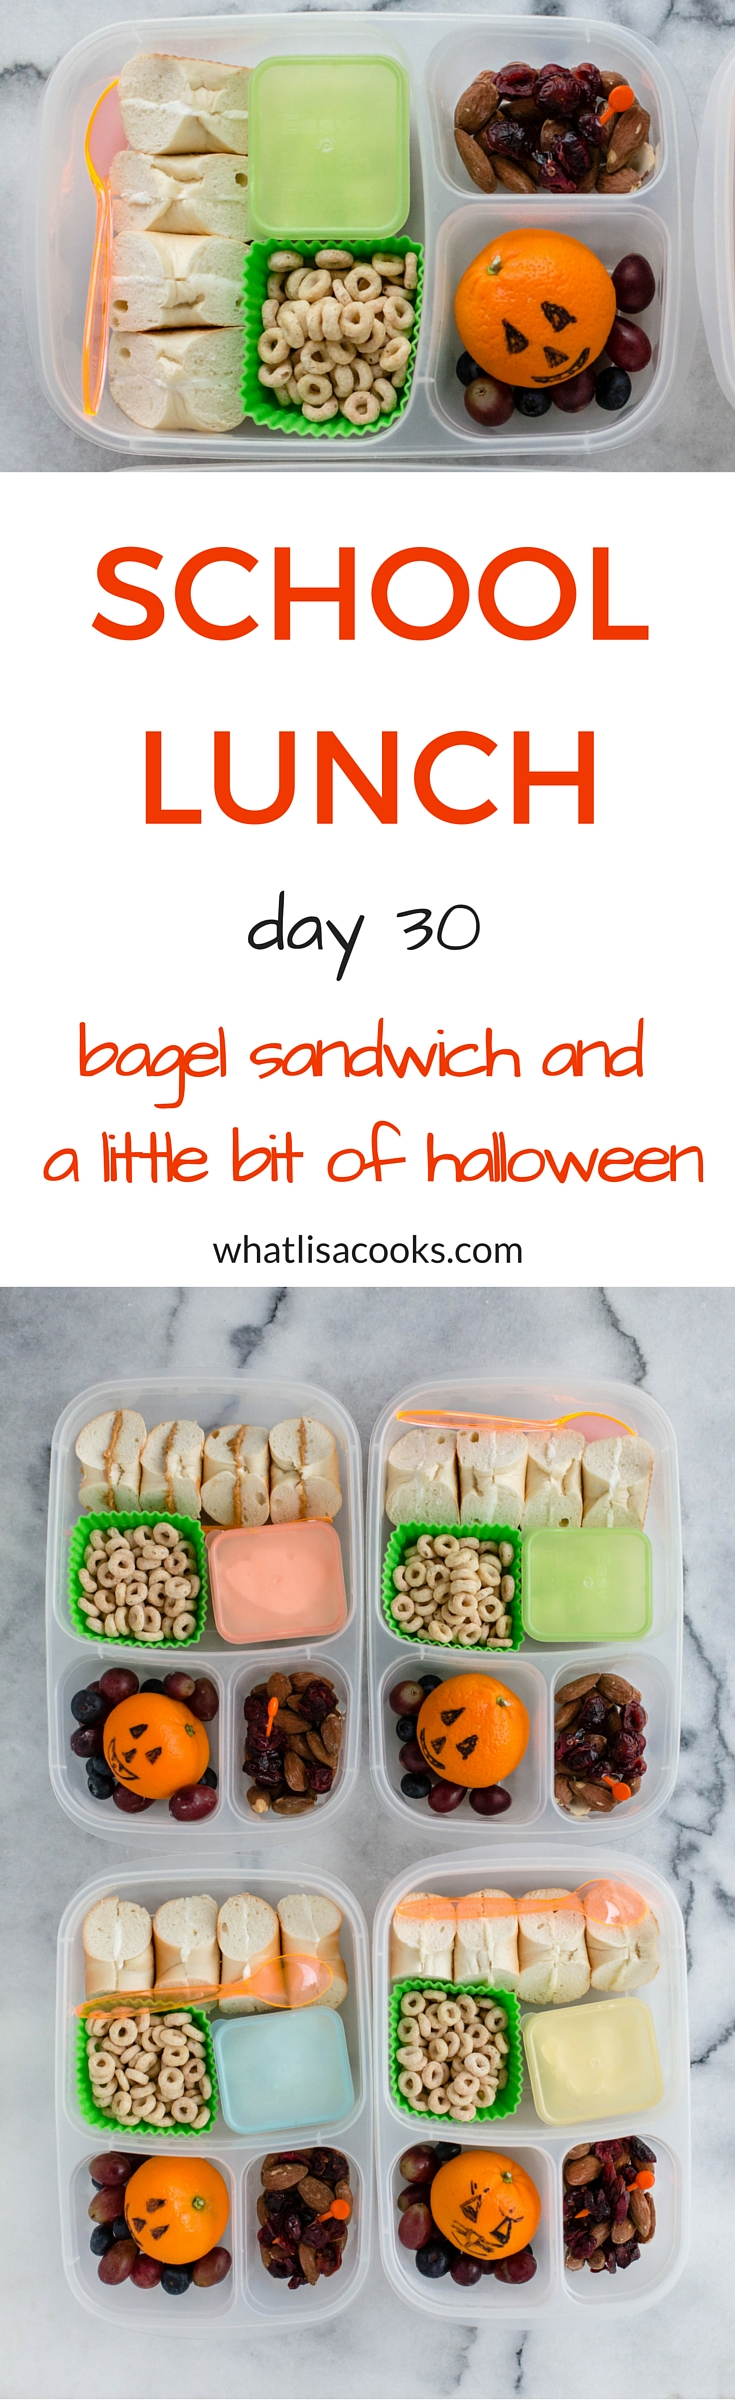 Easy school lunch idea from whatlisacooks.com: breakfast for lunch, bagel sandwiches.